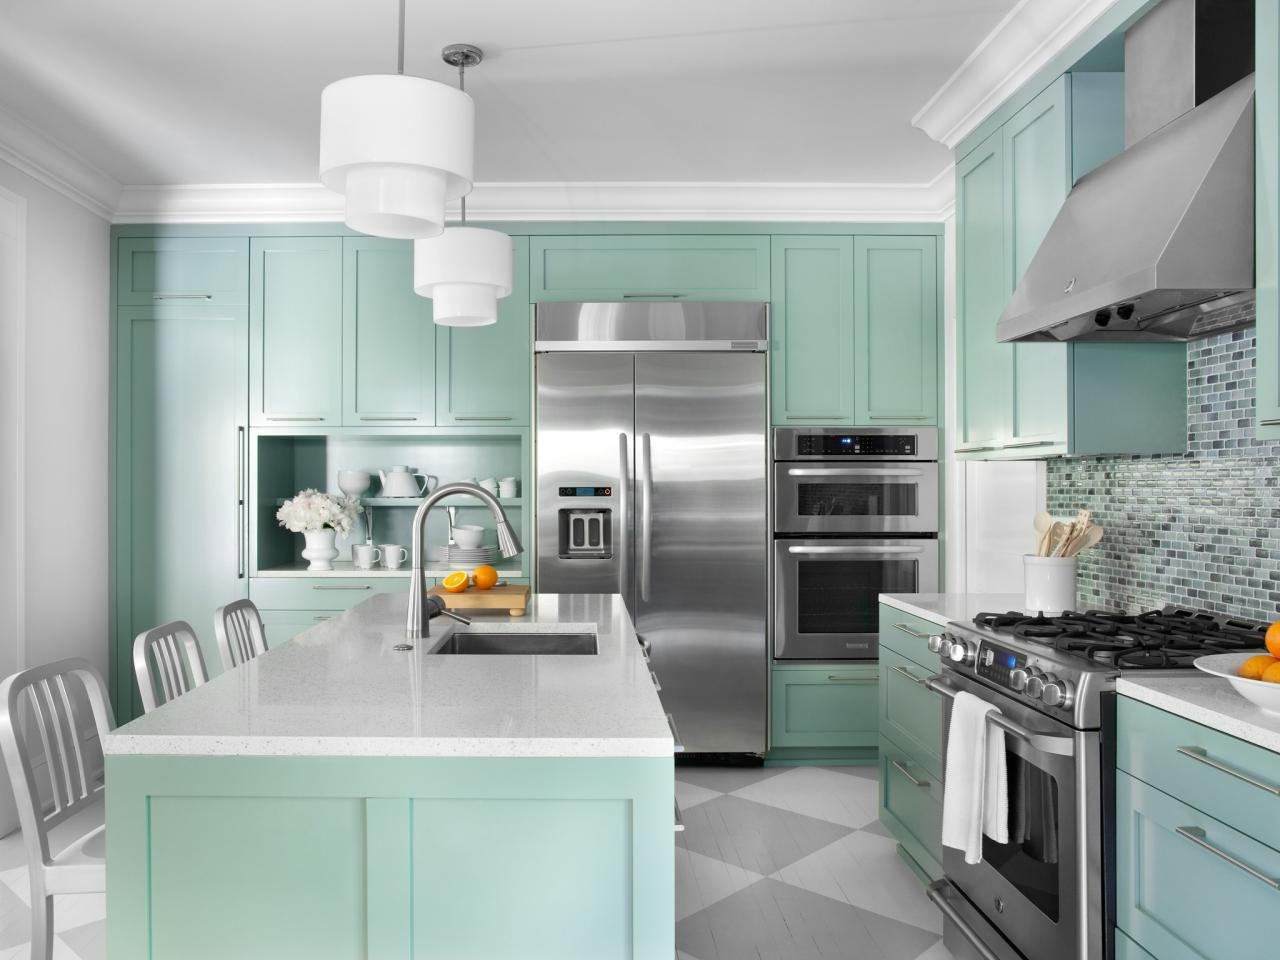 How To Choose The Right Kitchen Cabinet Materials For Your Project